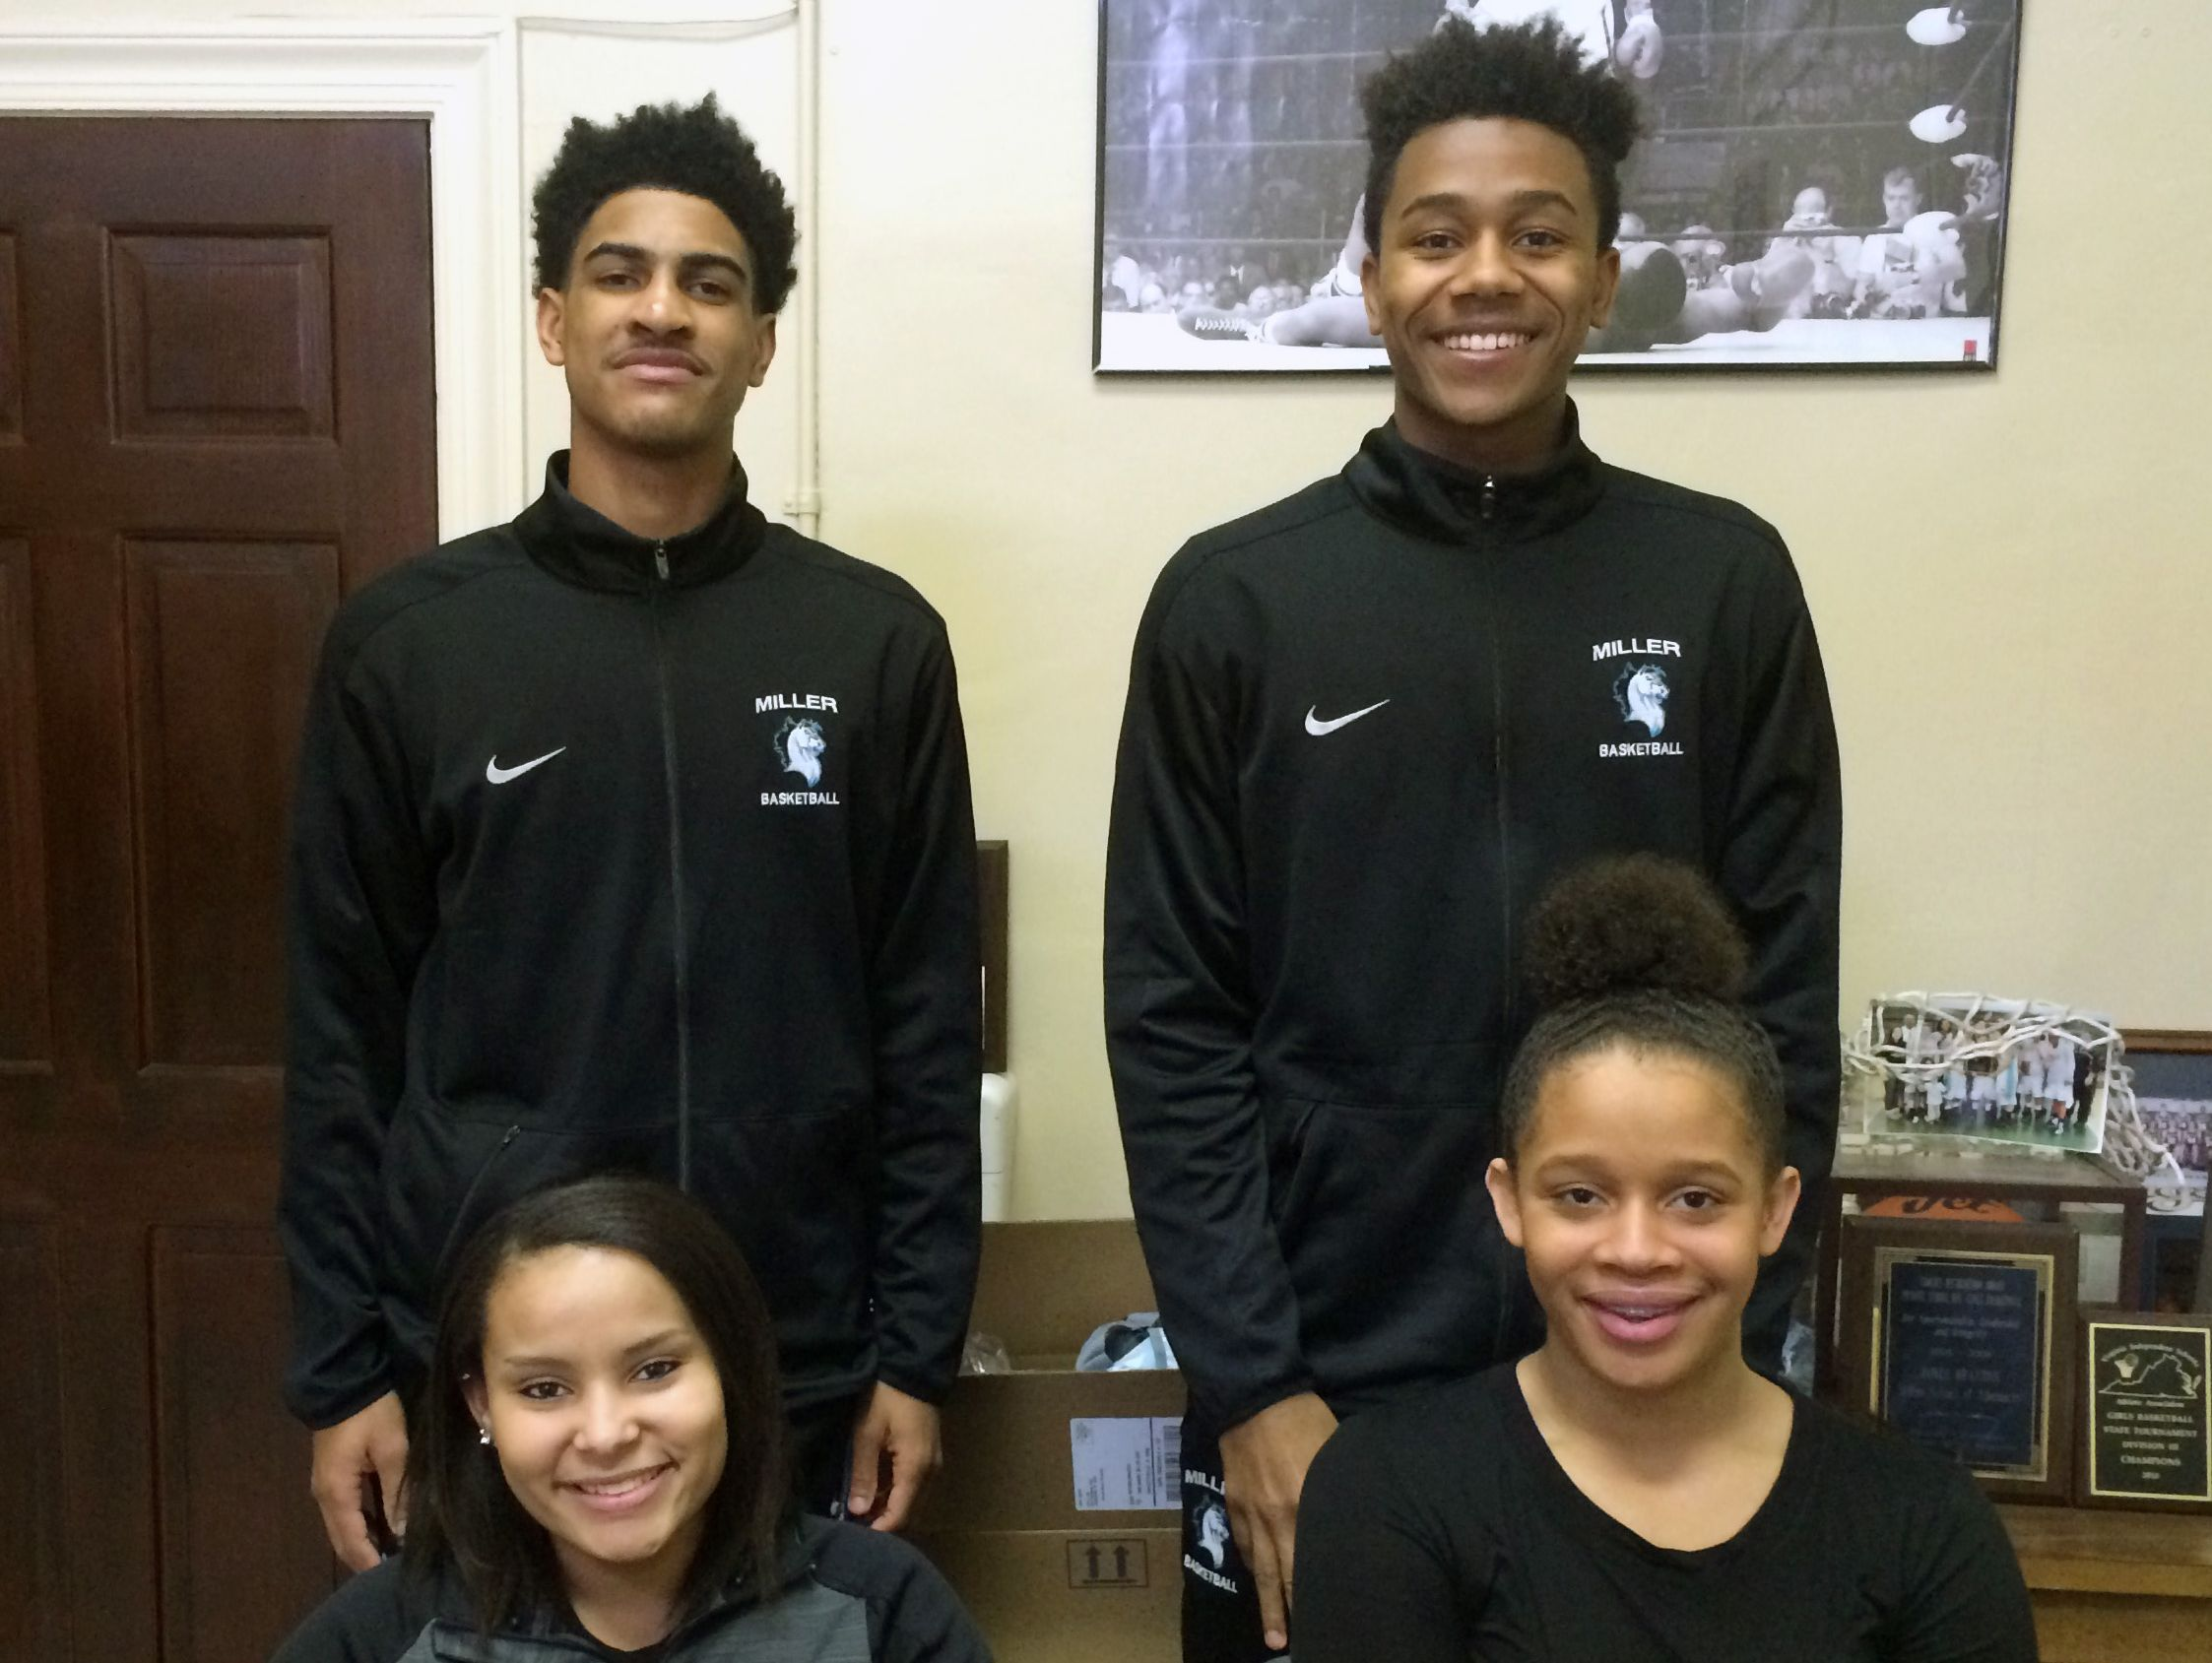 Four former Robert E. Lee athletes are fitting in well at the Miller School in Crozet. Top, from left, Chance Sheffey, Jaylin Reed; bottom, from left, Secret Bryant, Hannah Woodard.